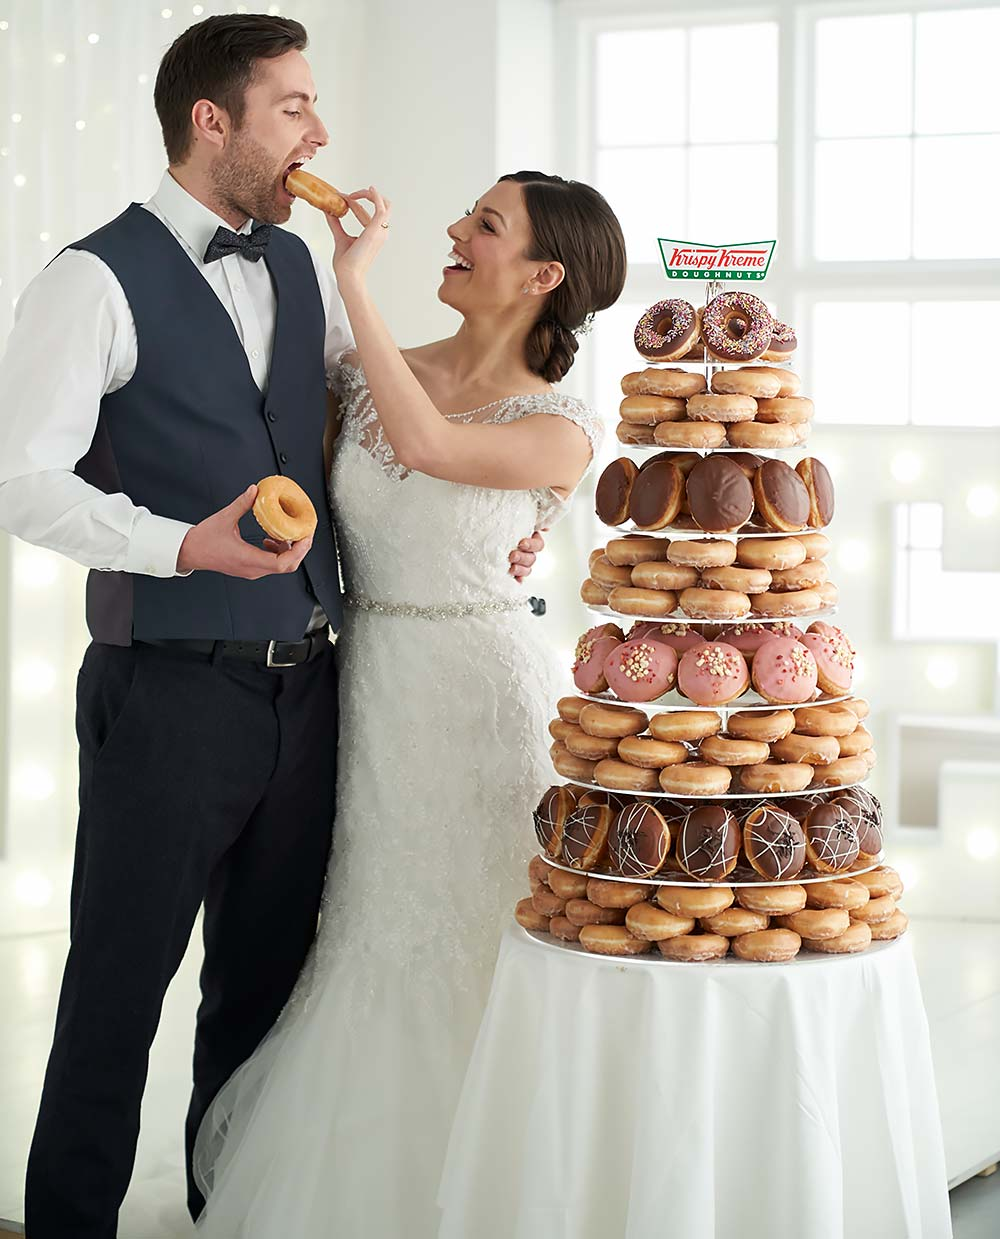 Krispy Kreme Wedding photoshoot at Basement